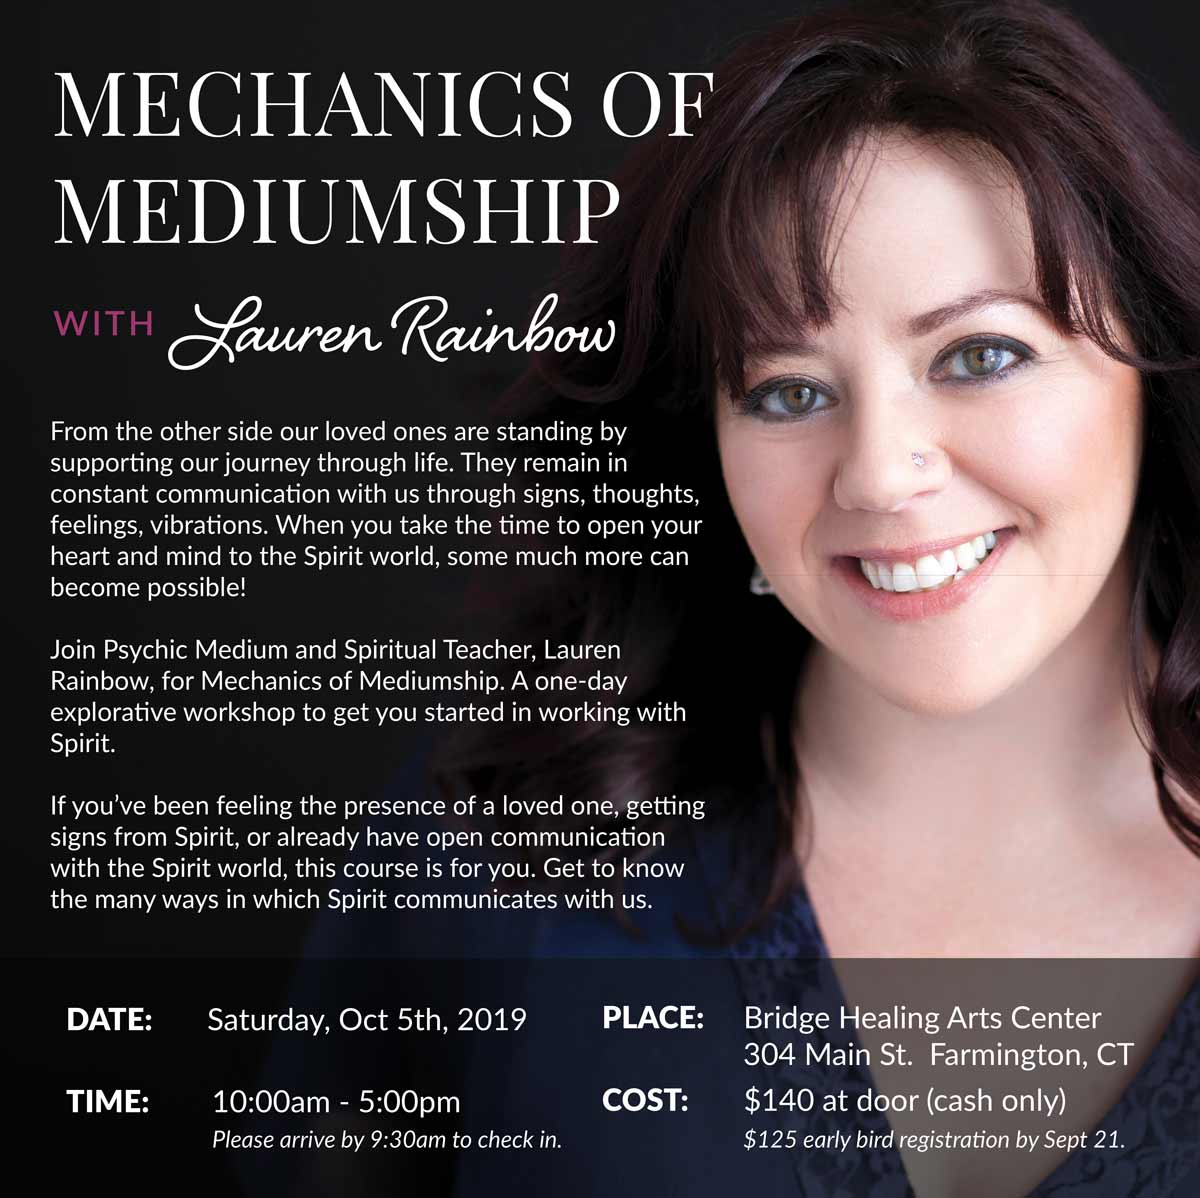 Mechanics of Mediumship @ Bridge Healing Arts Center | Farmington | Connecticut | United States